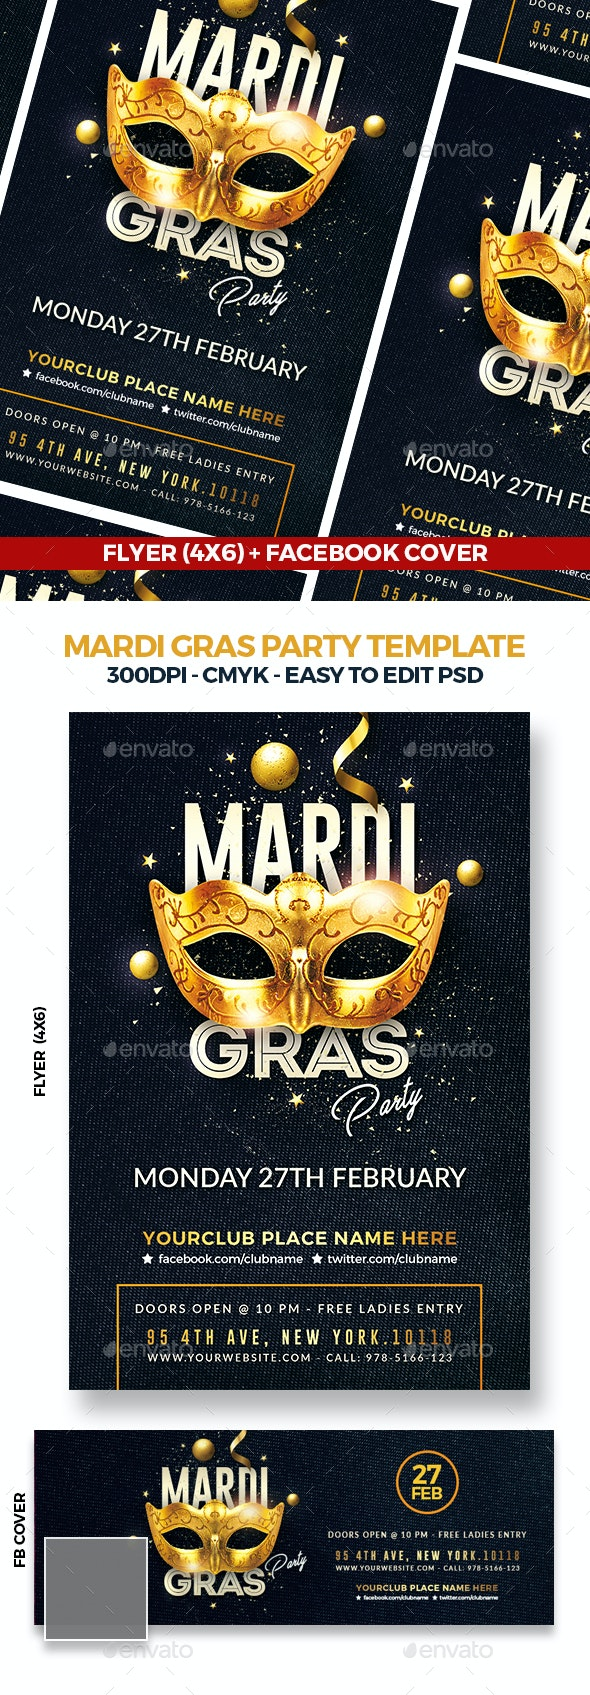 Mardi Gras Party Flyer Template - Events Flyers